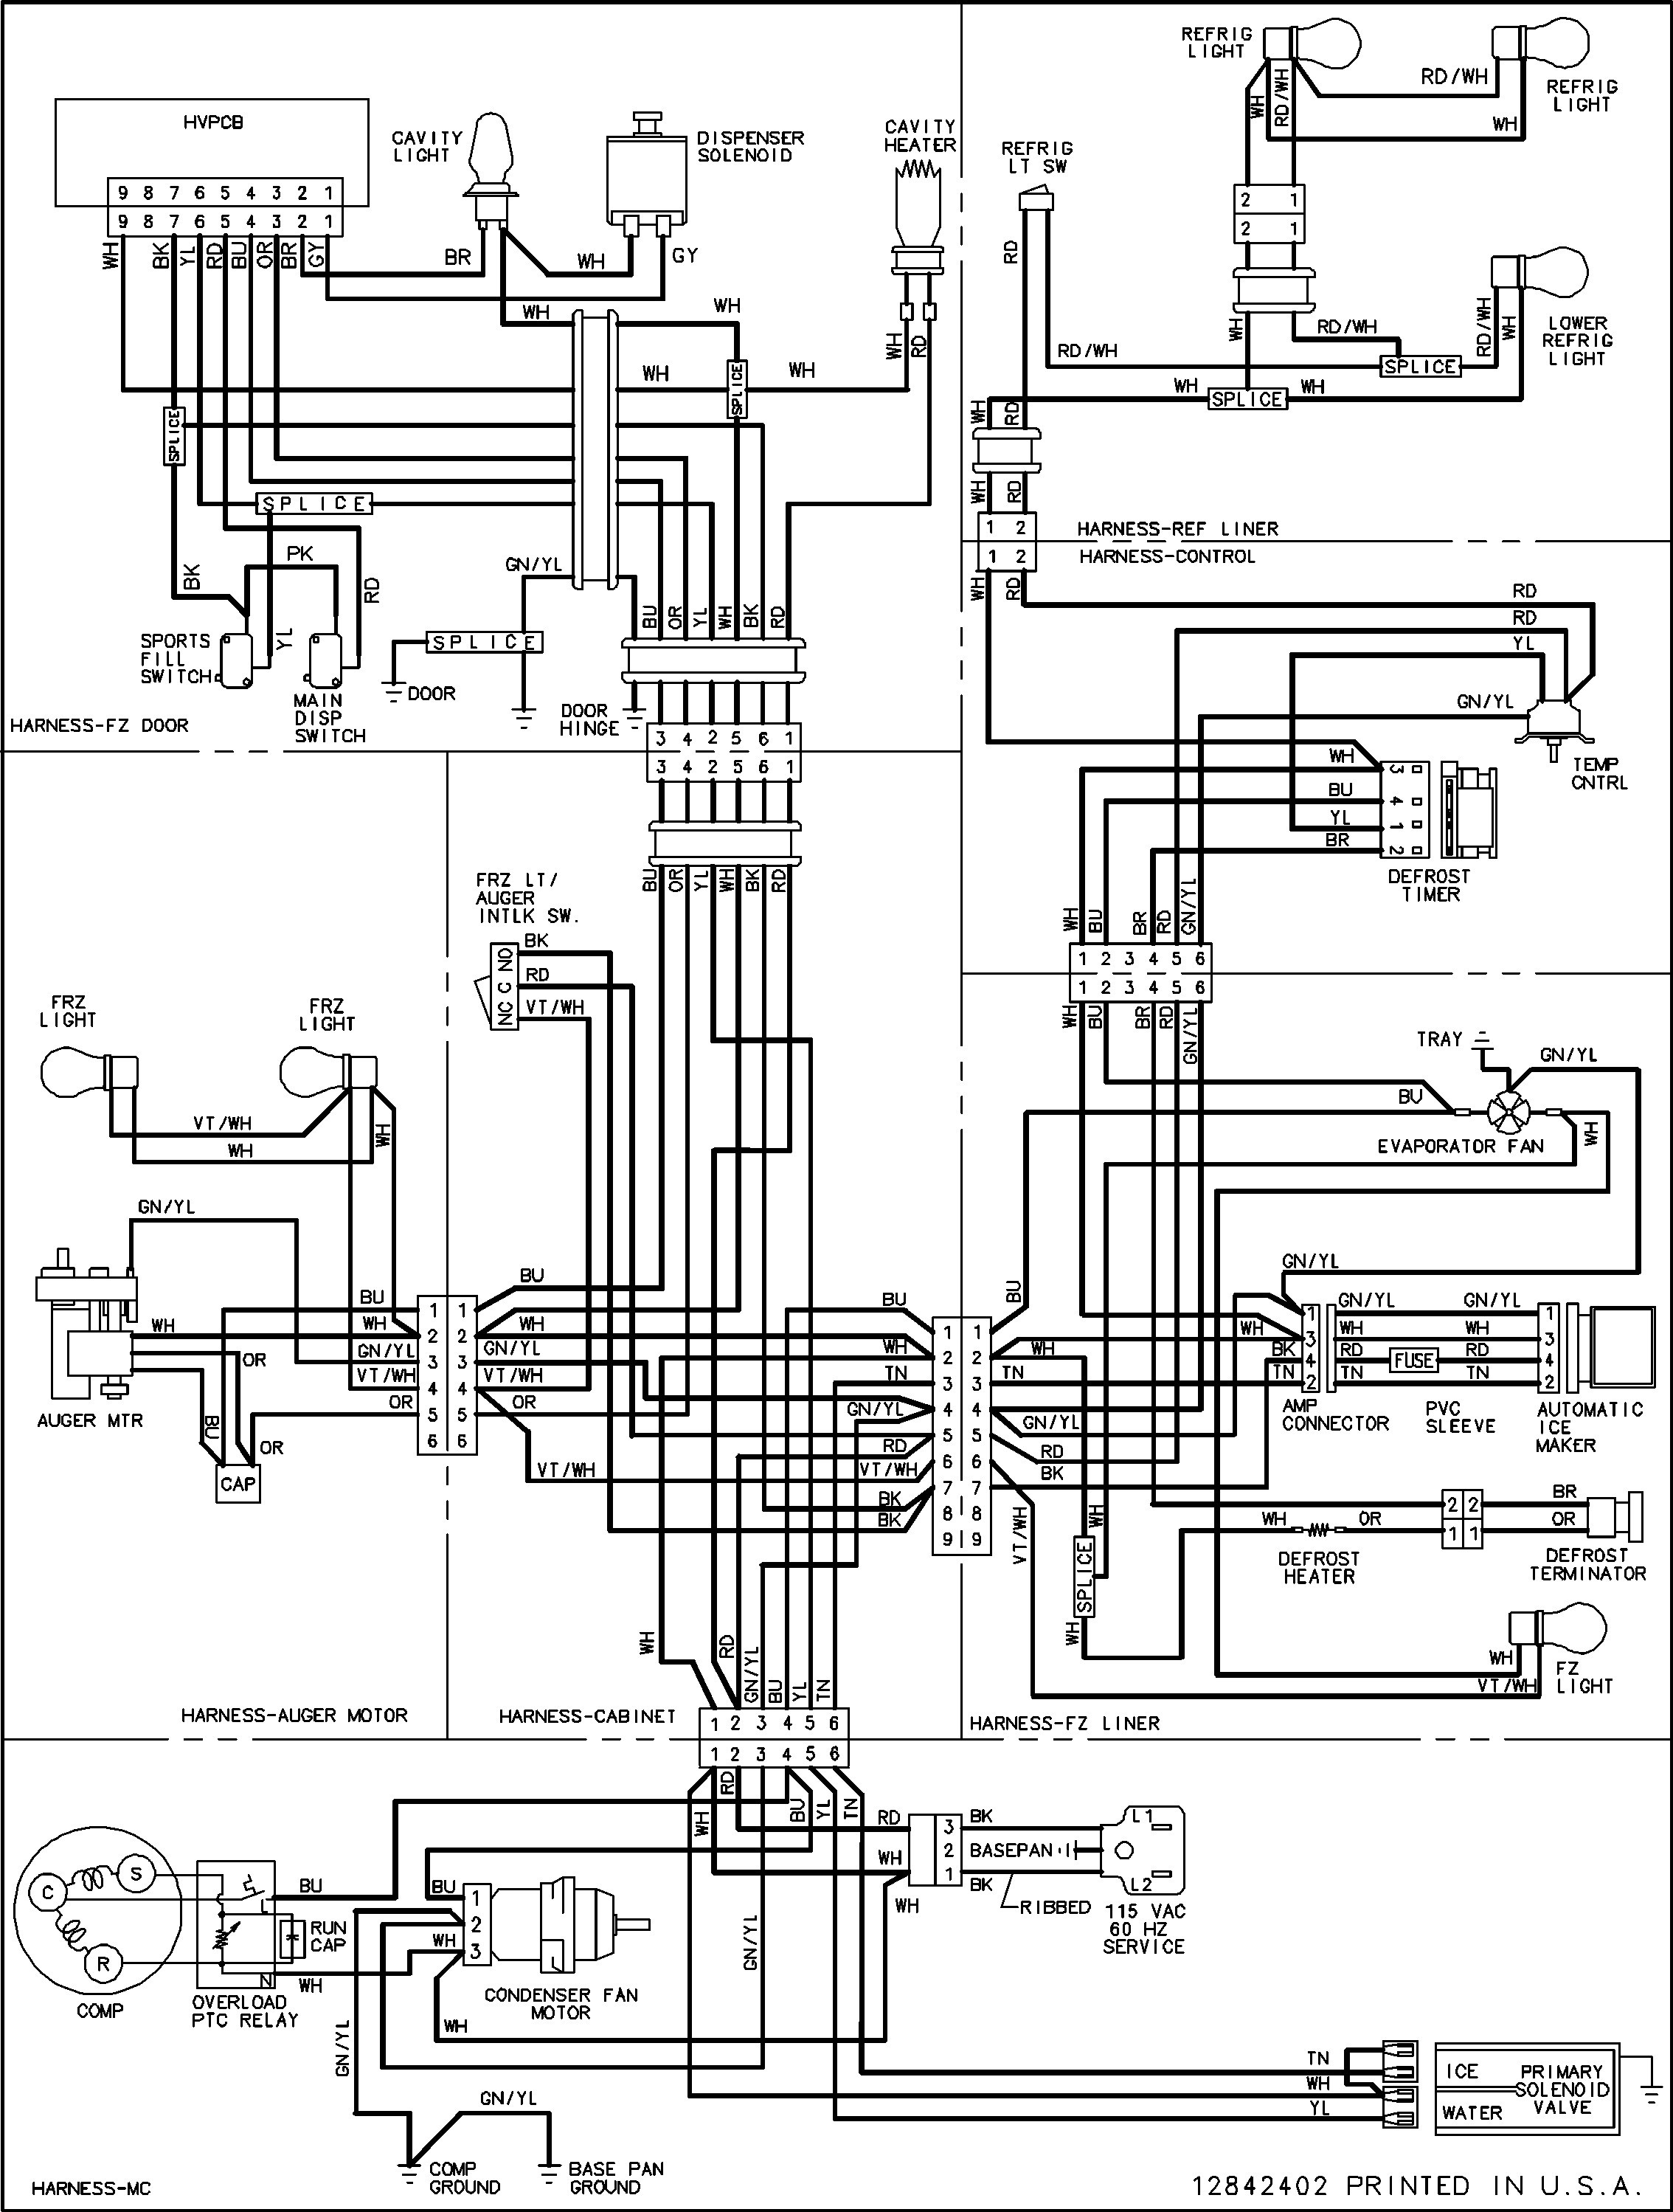 Wiring Schematic Whirlpool Dryer